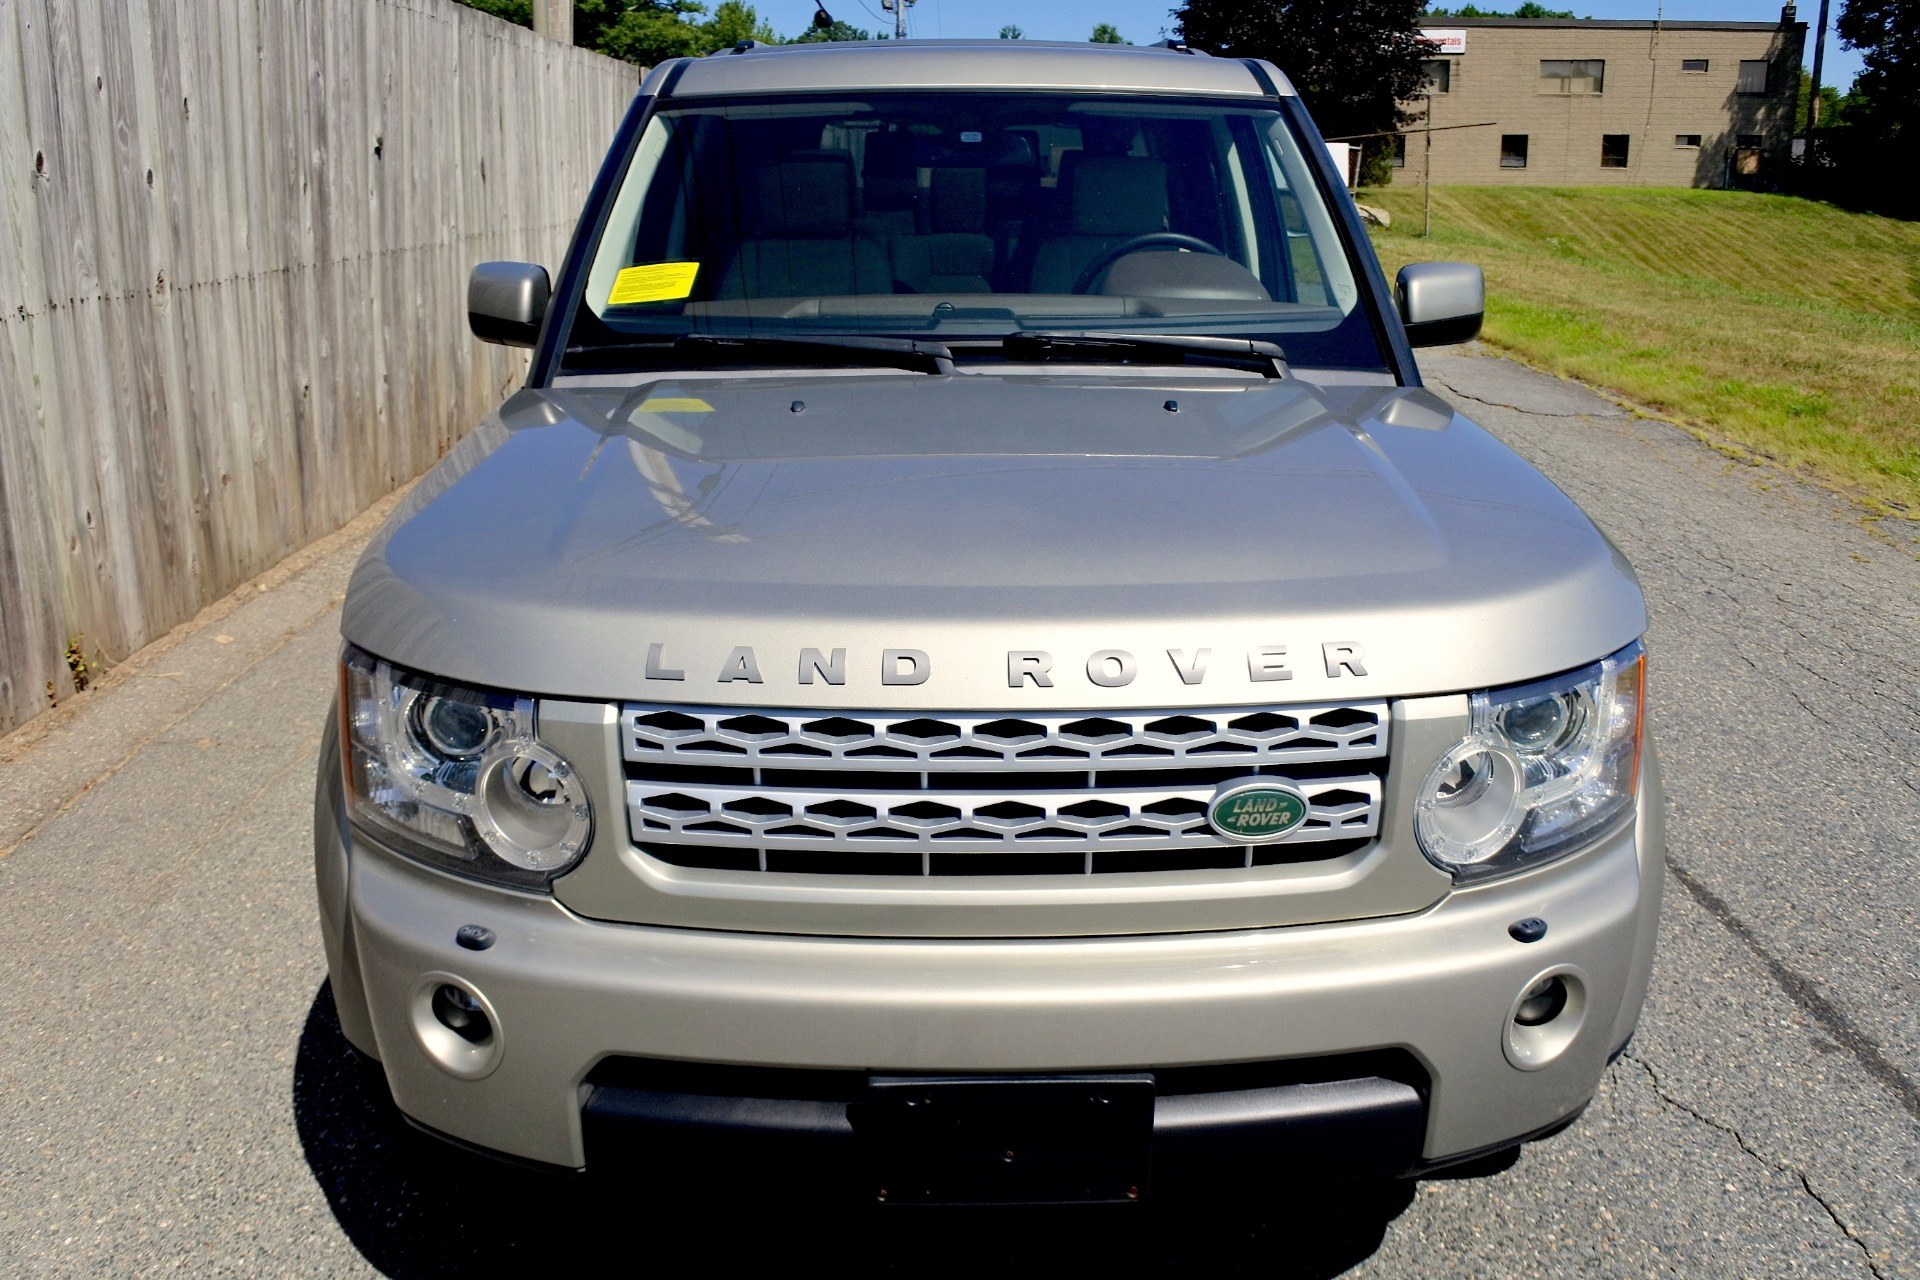 Used 2011 Land Rover Lr4 4WD 4dr V8 HSE Used 2011 Land Rover Lr4 4WD 4dr V8 HSE for sale  at Metro West Motorcars LLC in Shrewsbury MA 8